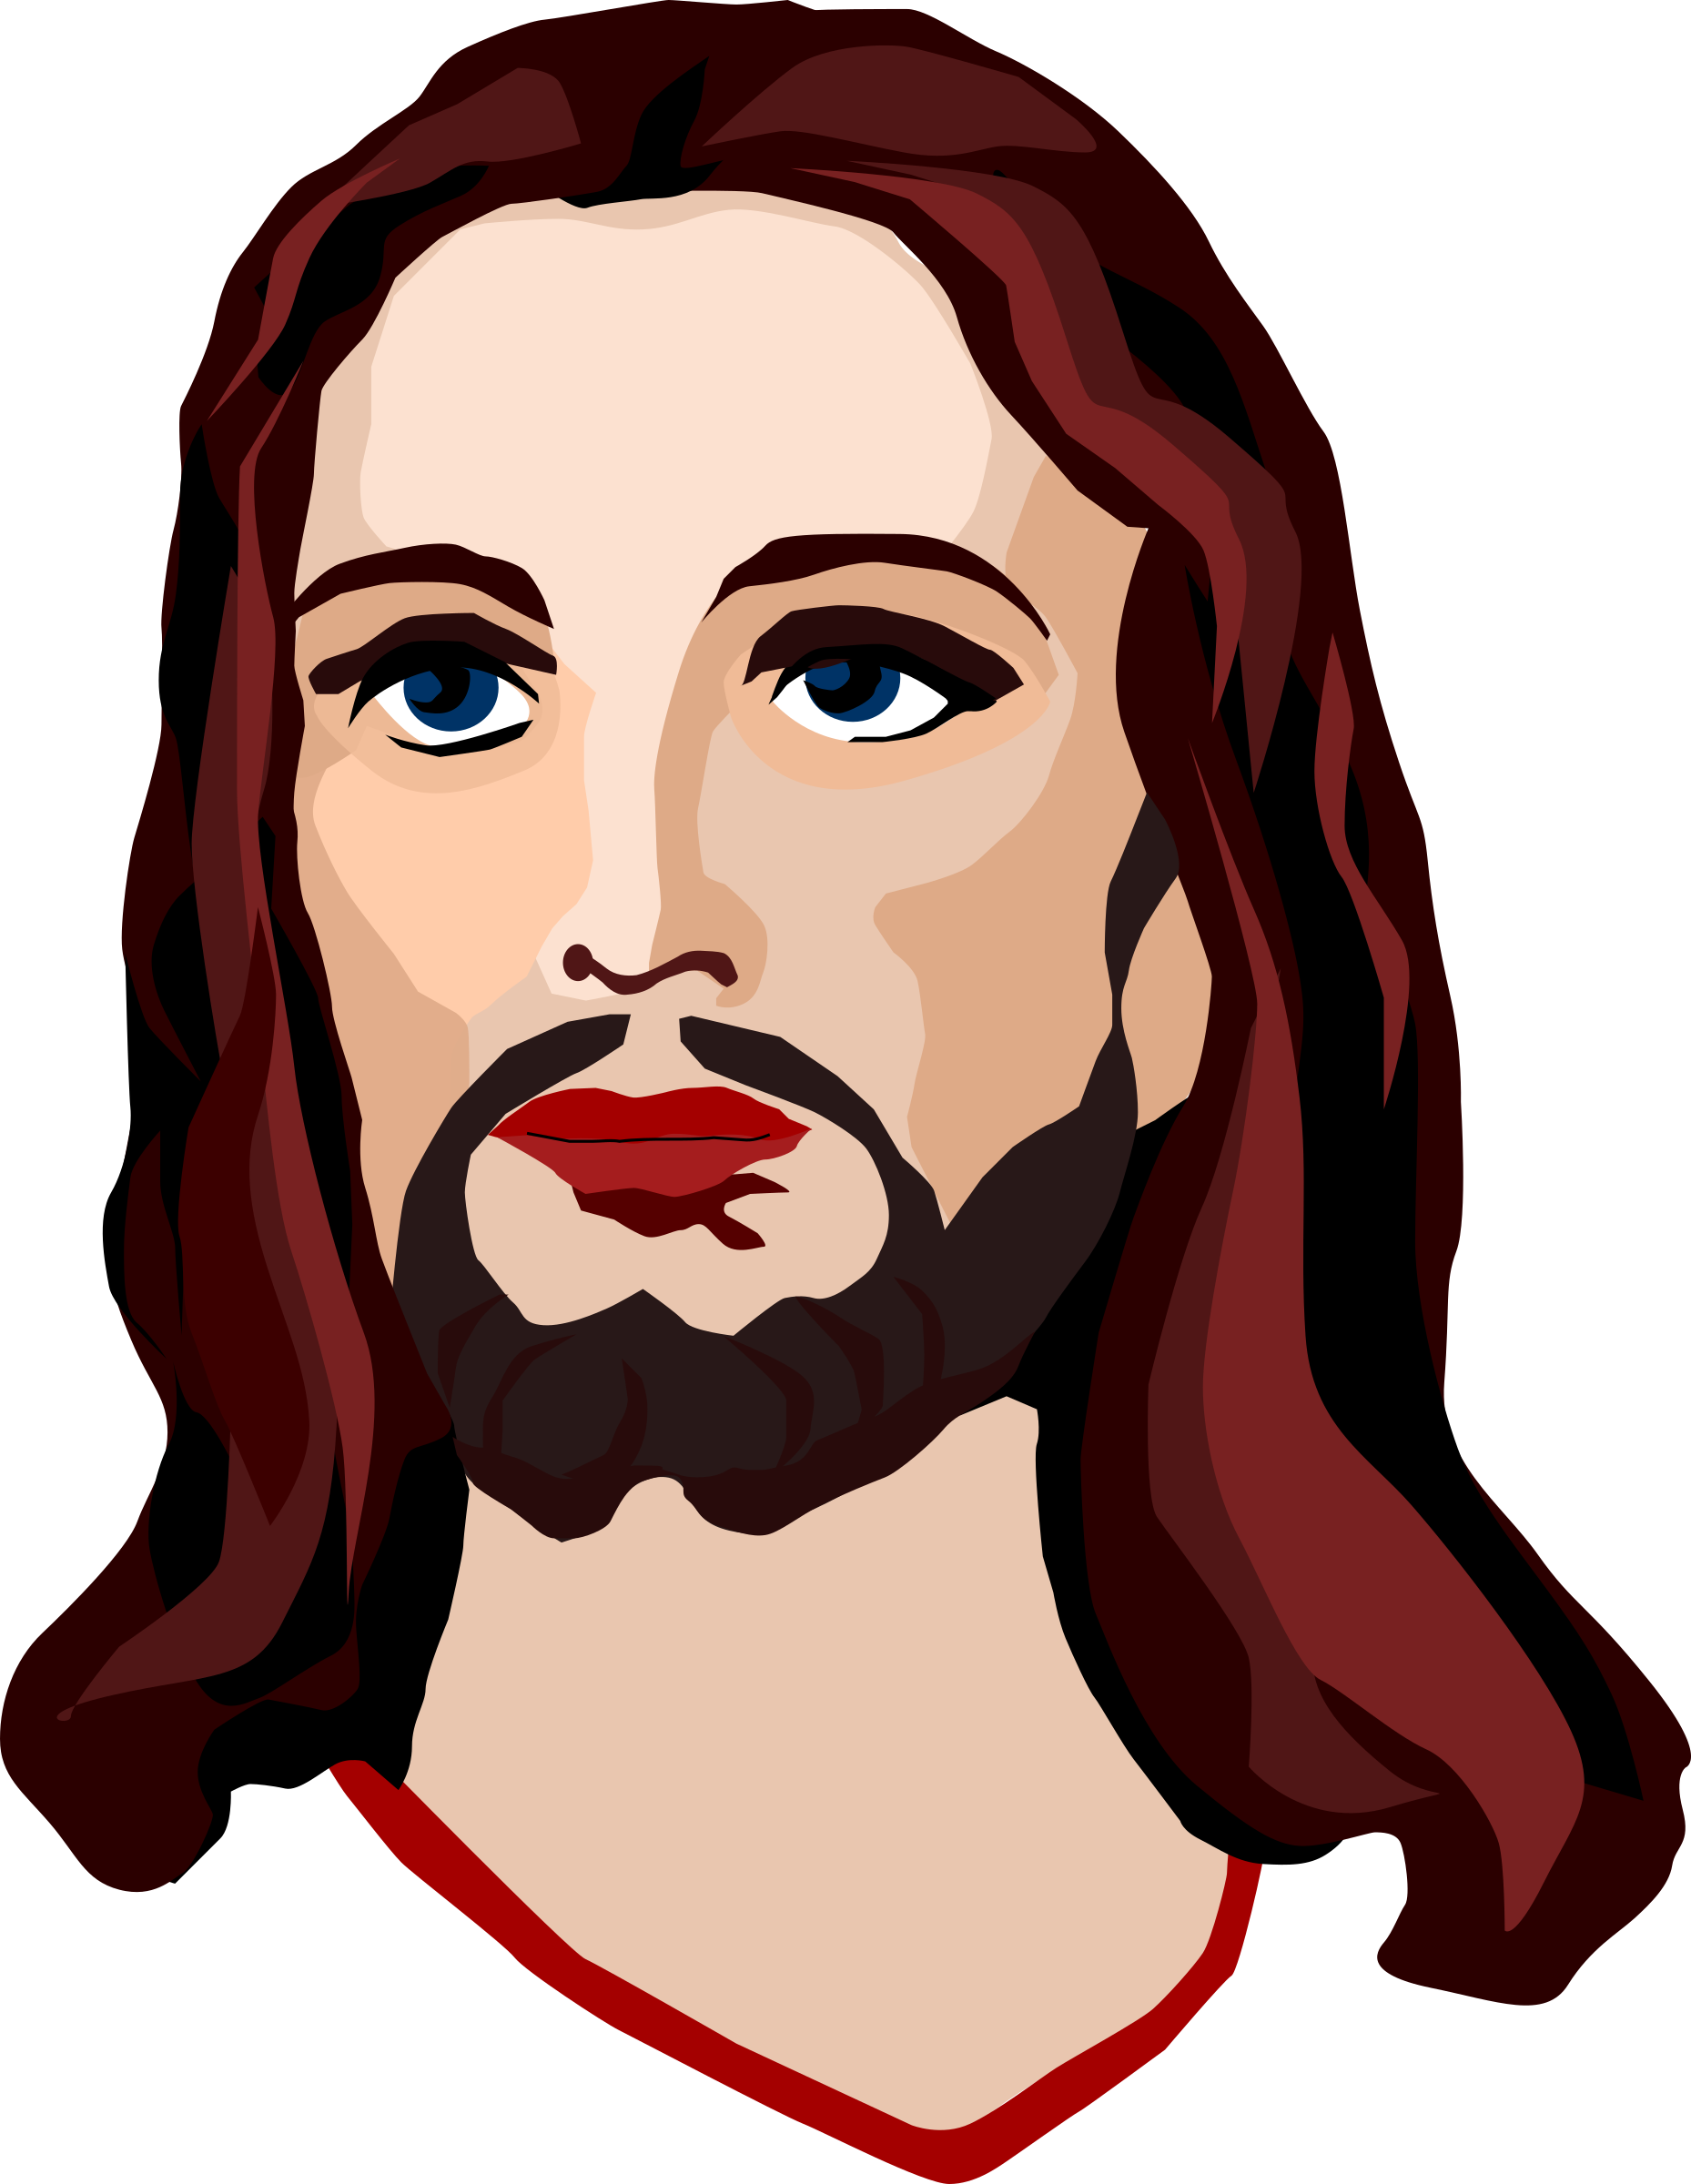 Jesus Christ by stephencuyos